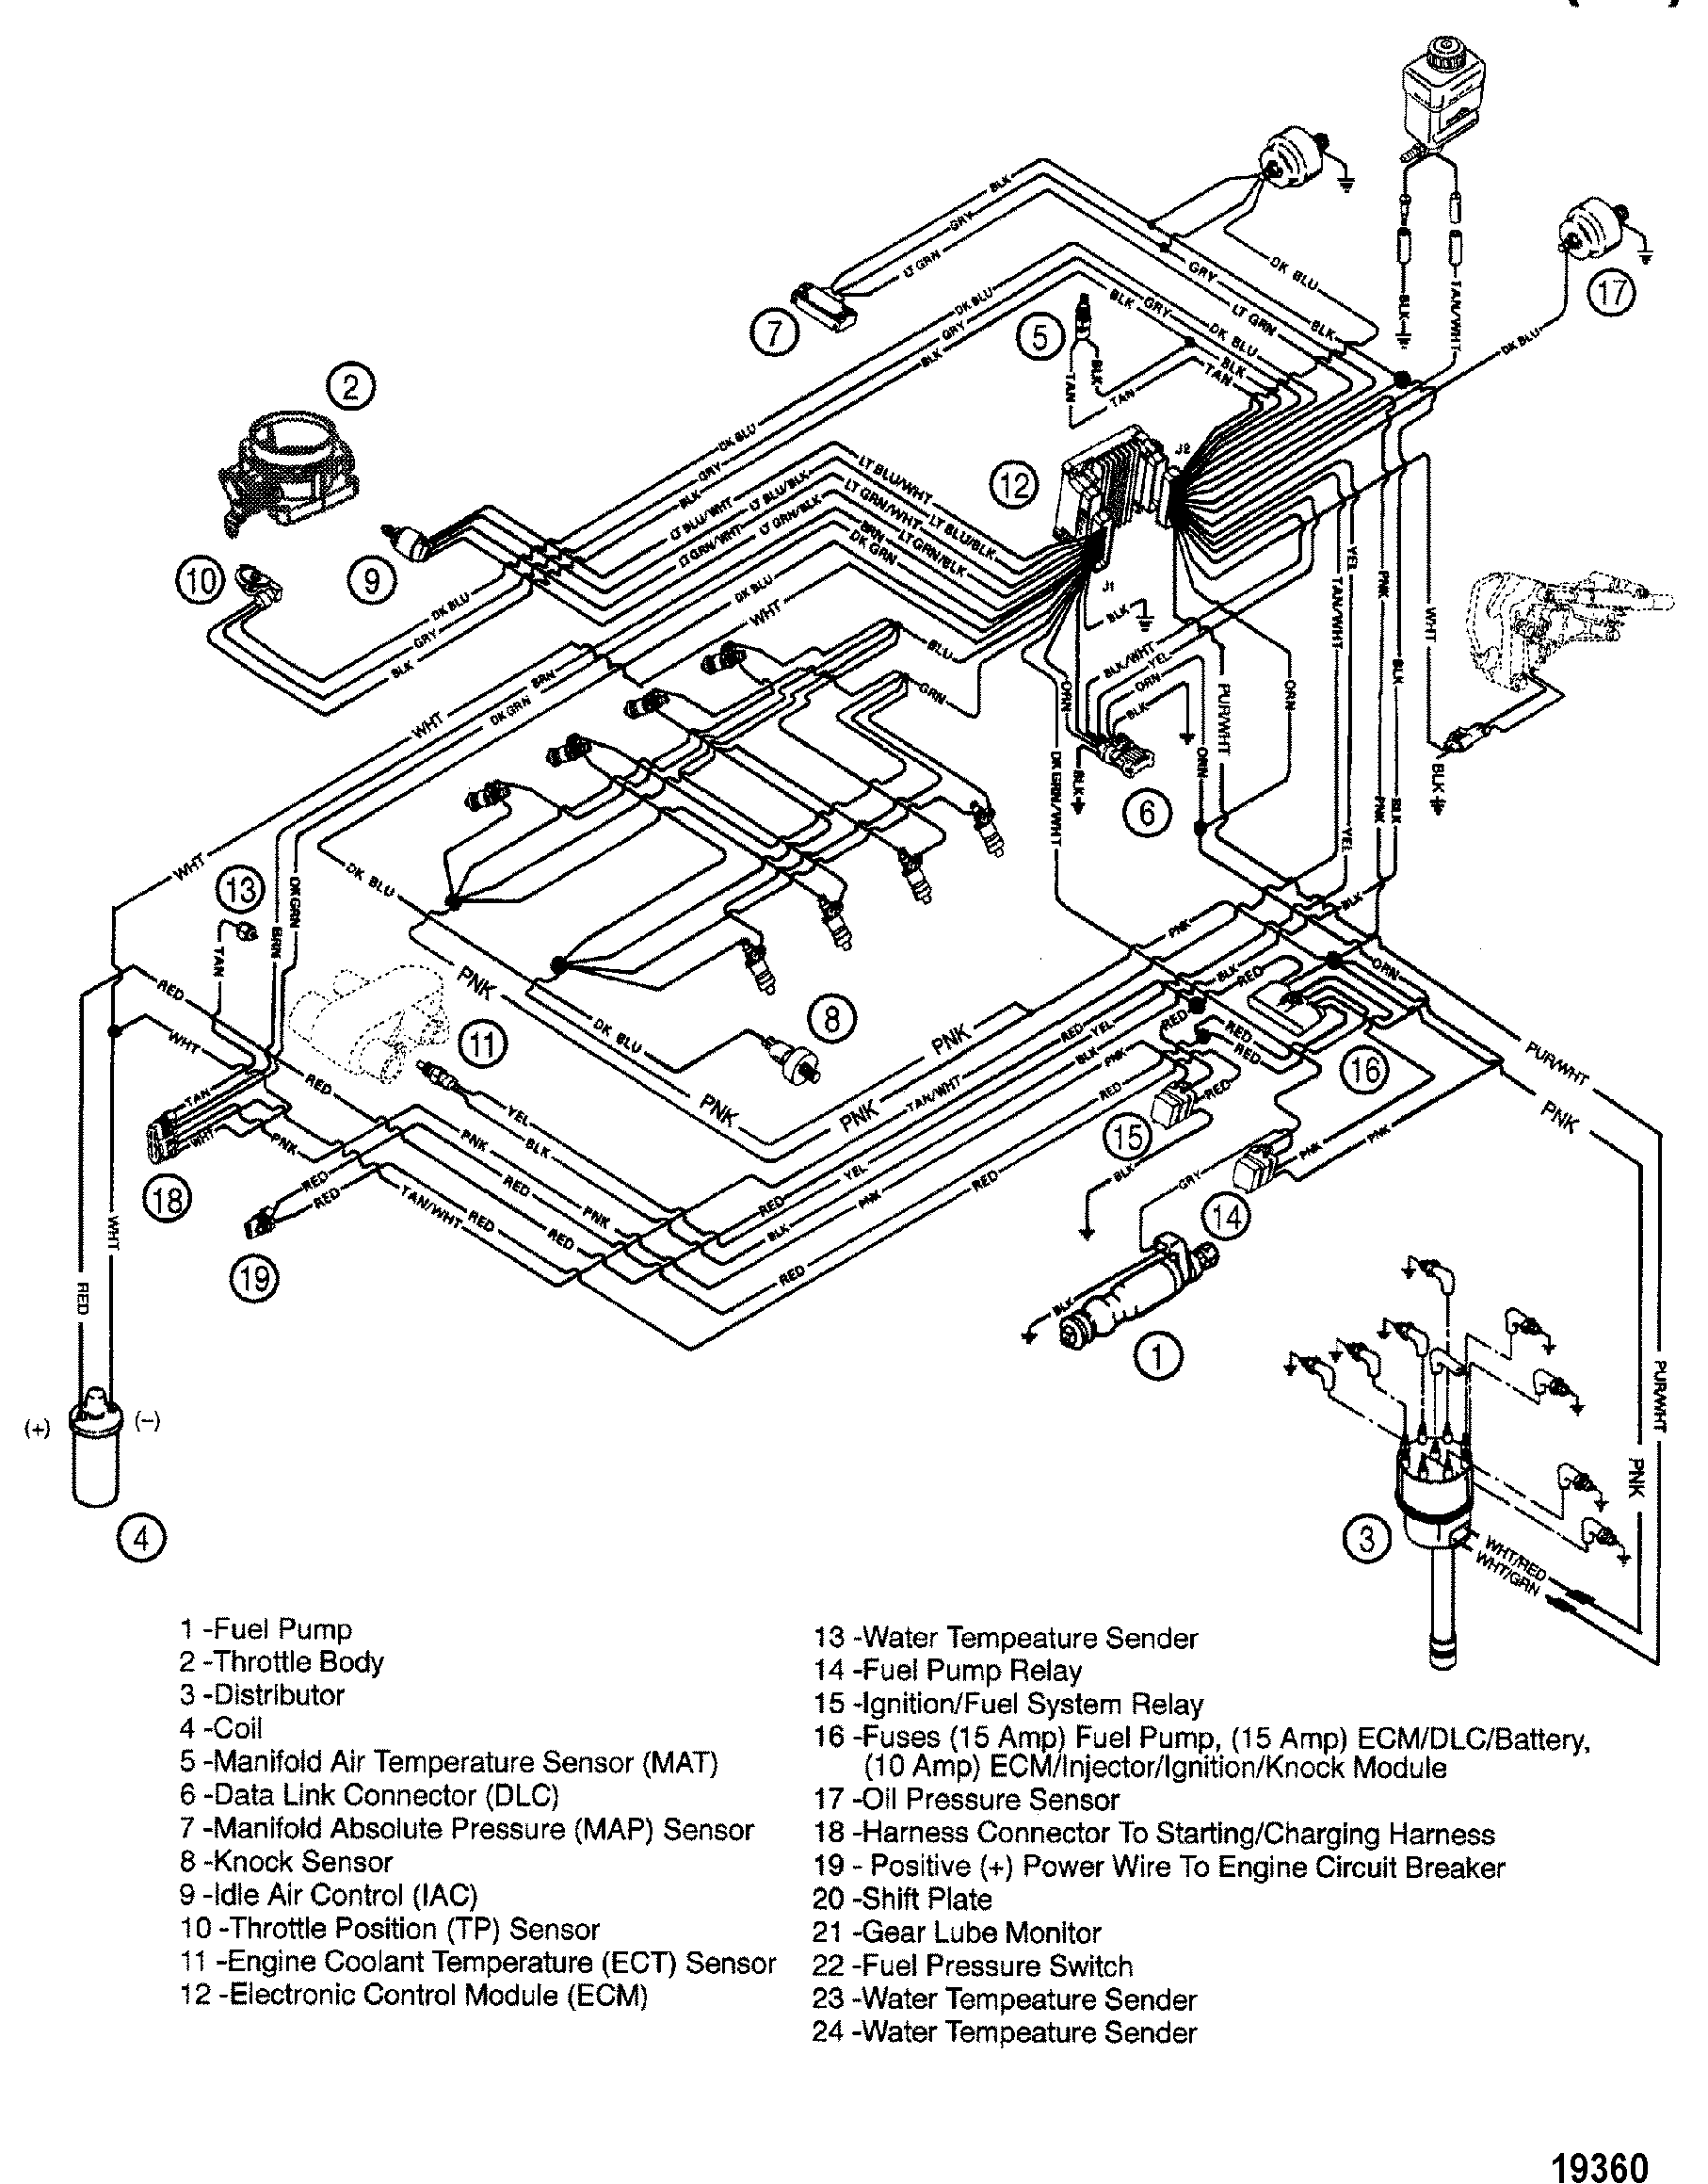 Chevy Truck Wiring Diagram 5 7 Vortec